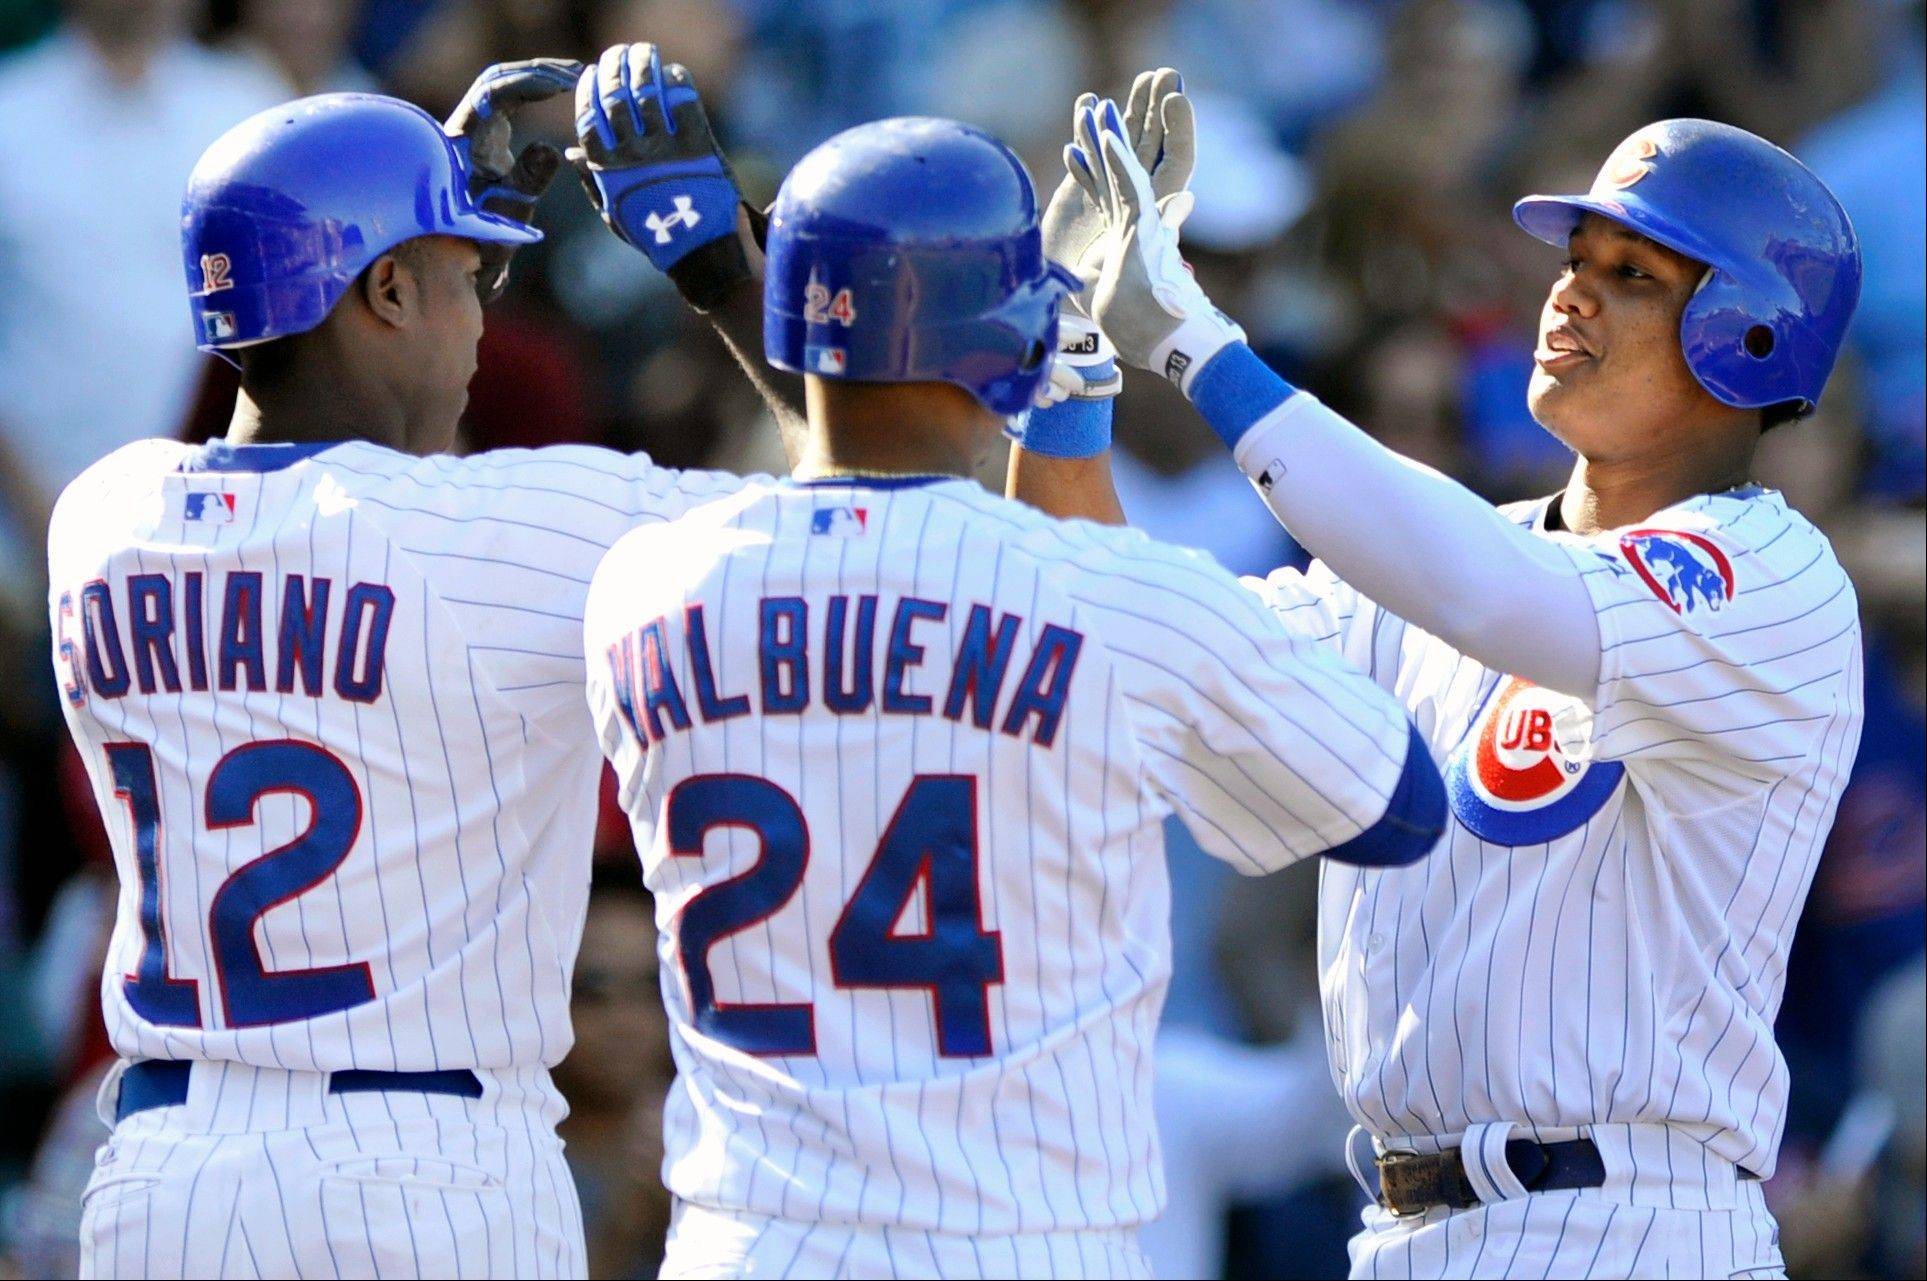 Starlin Castro celebrates with teammates Alfonso Soriano and Luis Valbuena after hitting a 3-run homer in the sixth inning Friday at Wrigley Field. The homer proved to be the difference maker as the Cubs topped the Pissburgh Pirated 7-4.